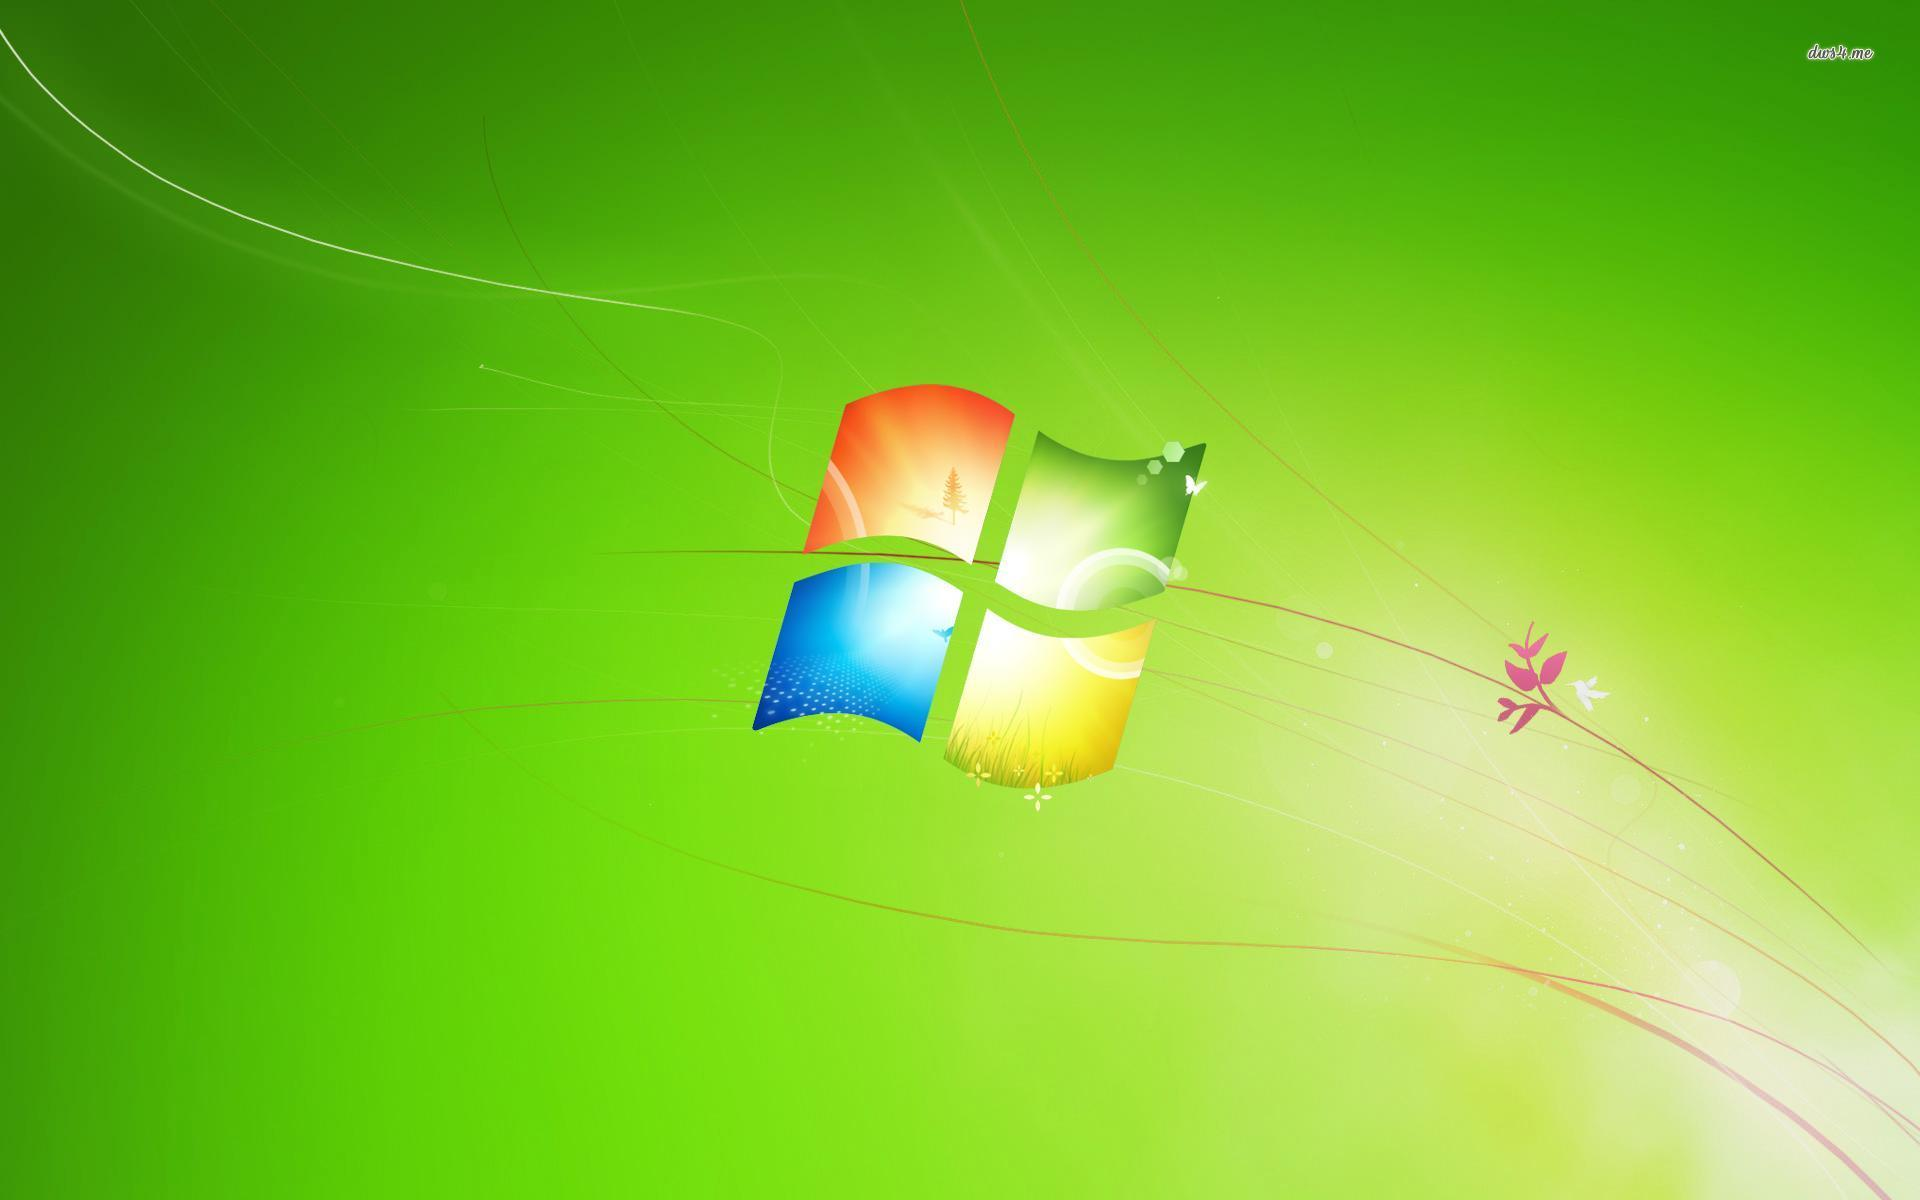 windows logo wallpapers Wallpapers HD Image 10411